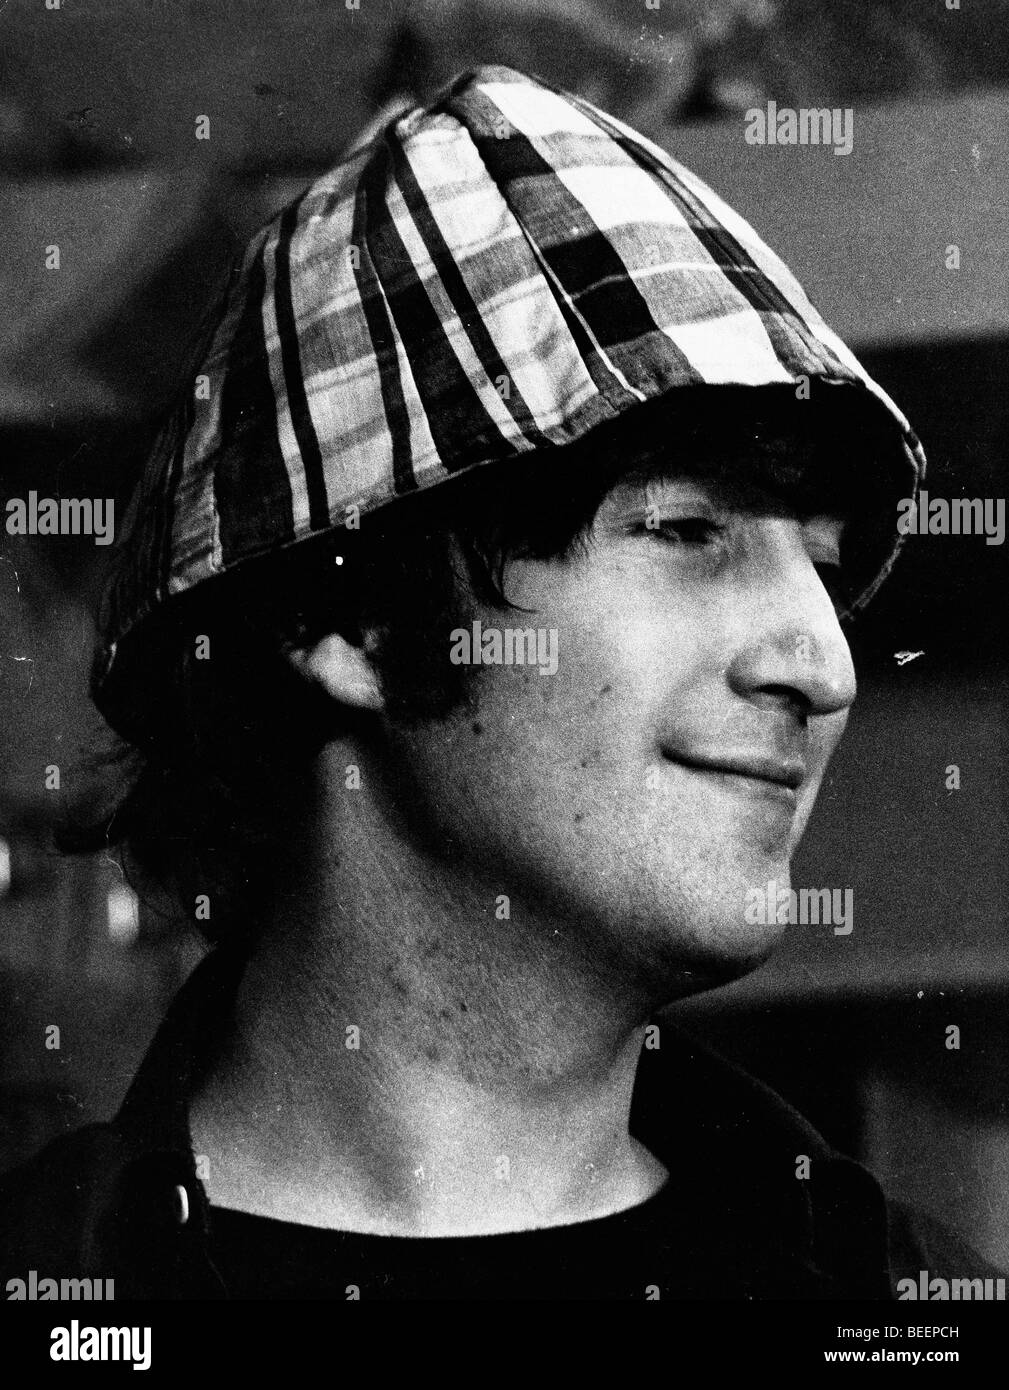 Beatles Singer John Lennon Wearing Plaid Hat